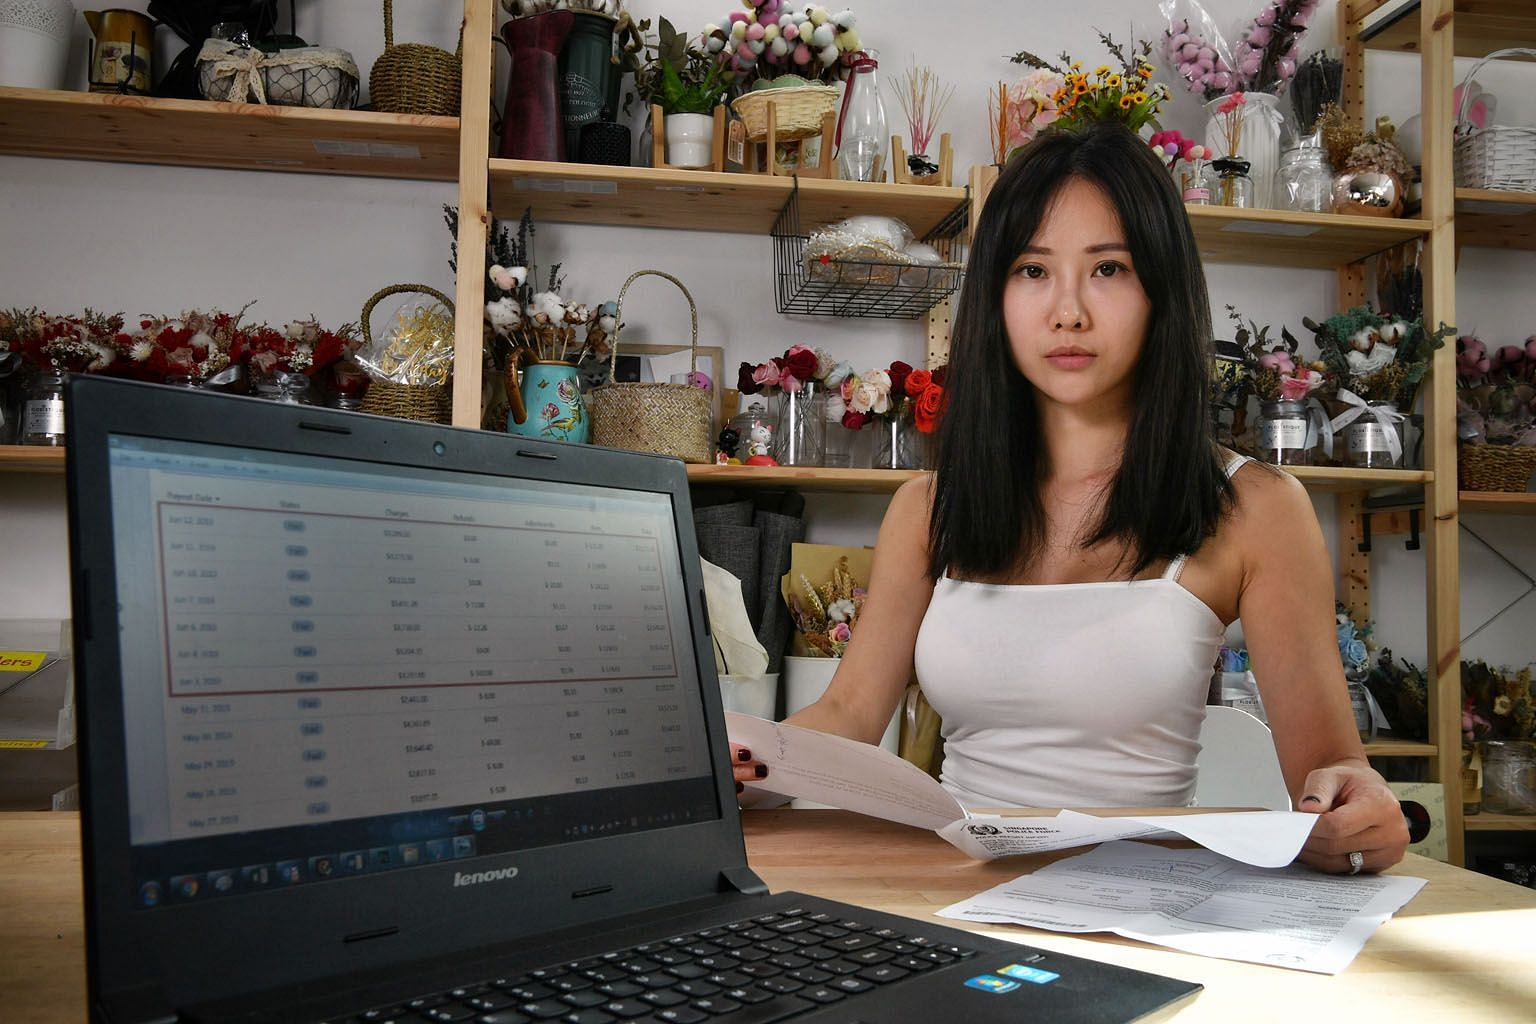 Ms Wendy Han, co-founder of online flower shop Floristique, said she discovered on Wednesday that hackers had entered its Shopify account and changed the shop's bank account details to their own. As a result, the sales proceeds went directly to the h